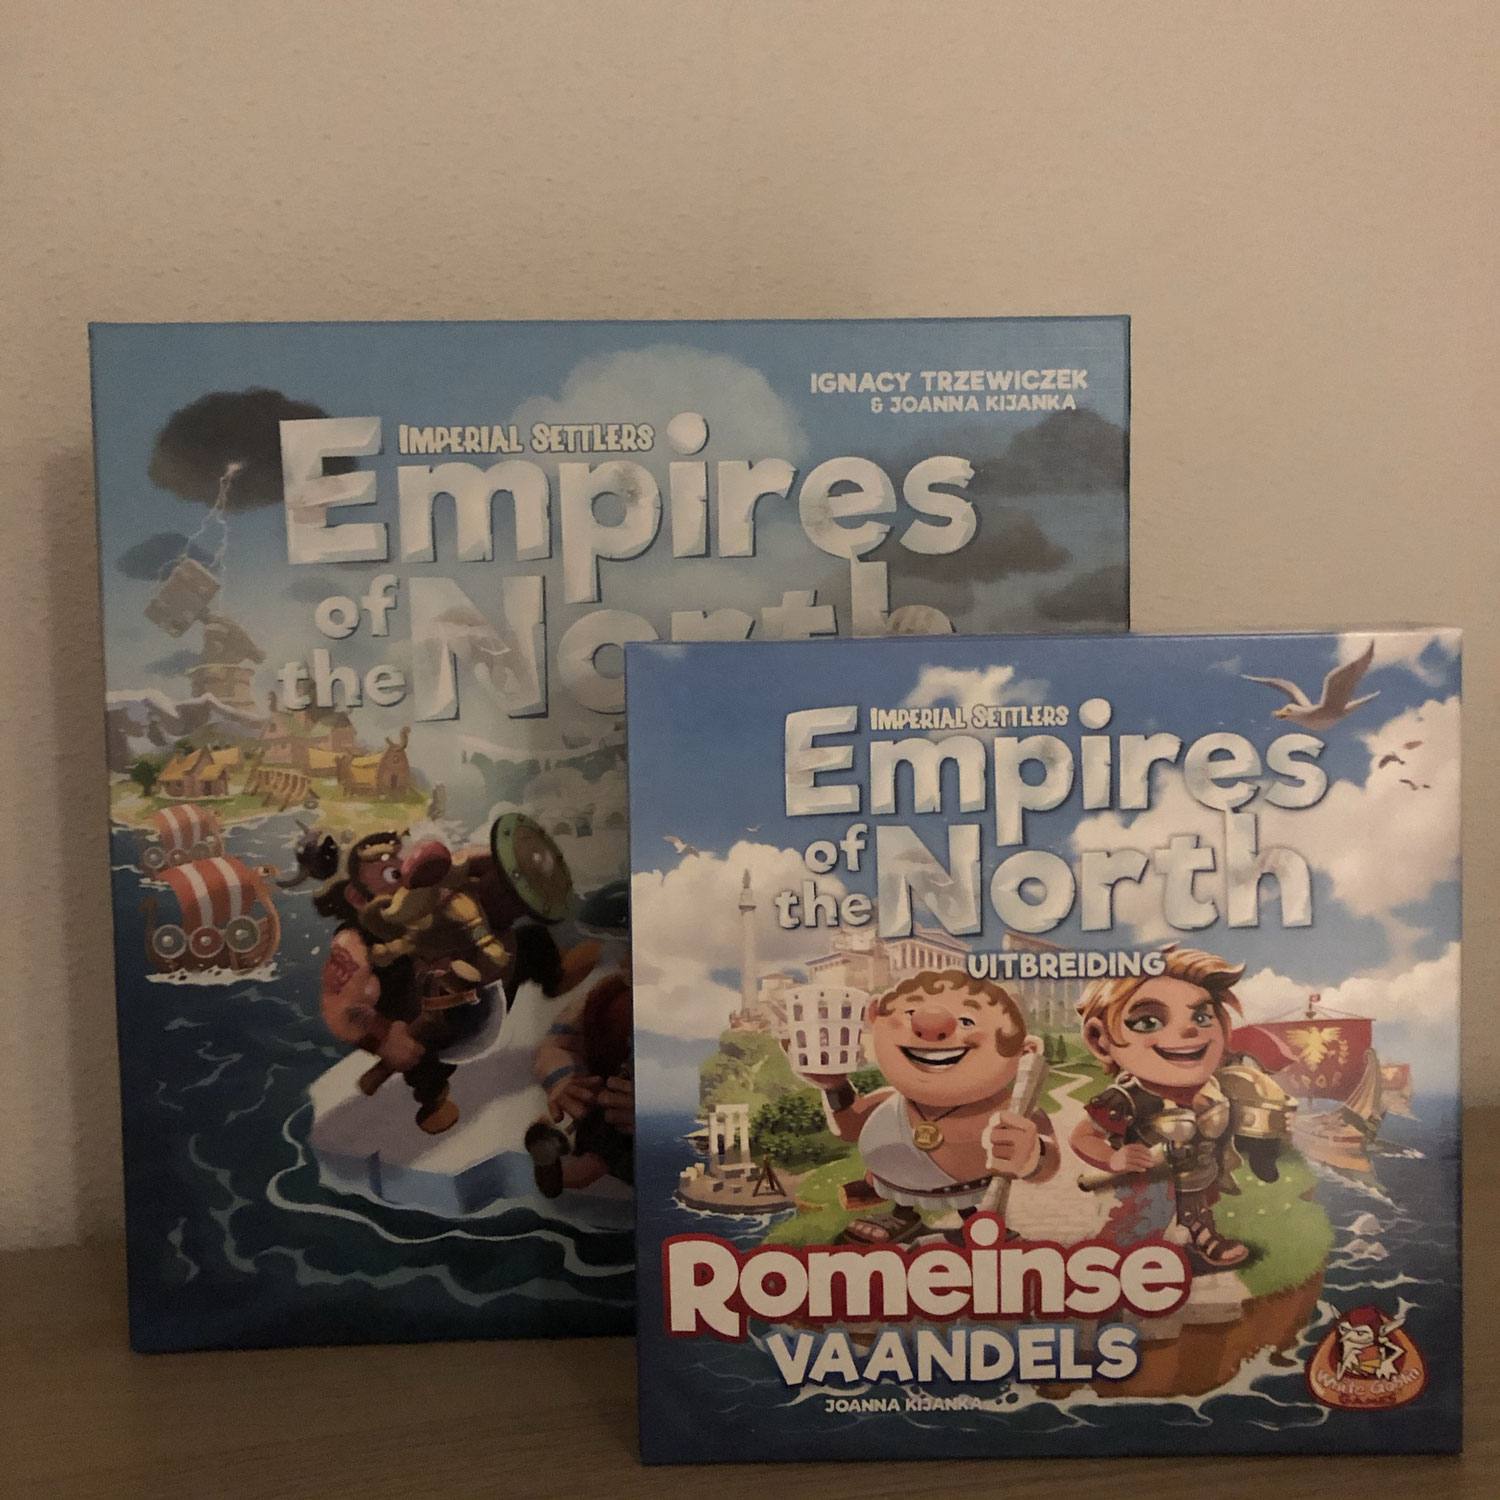 Empires of the North & uitbreiding Romeinse Vaandels